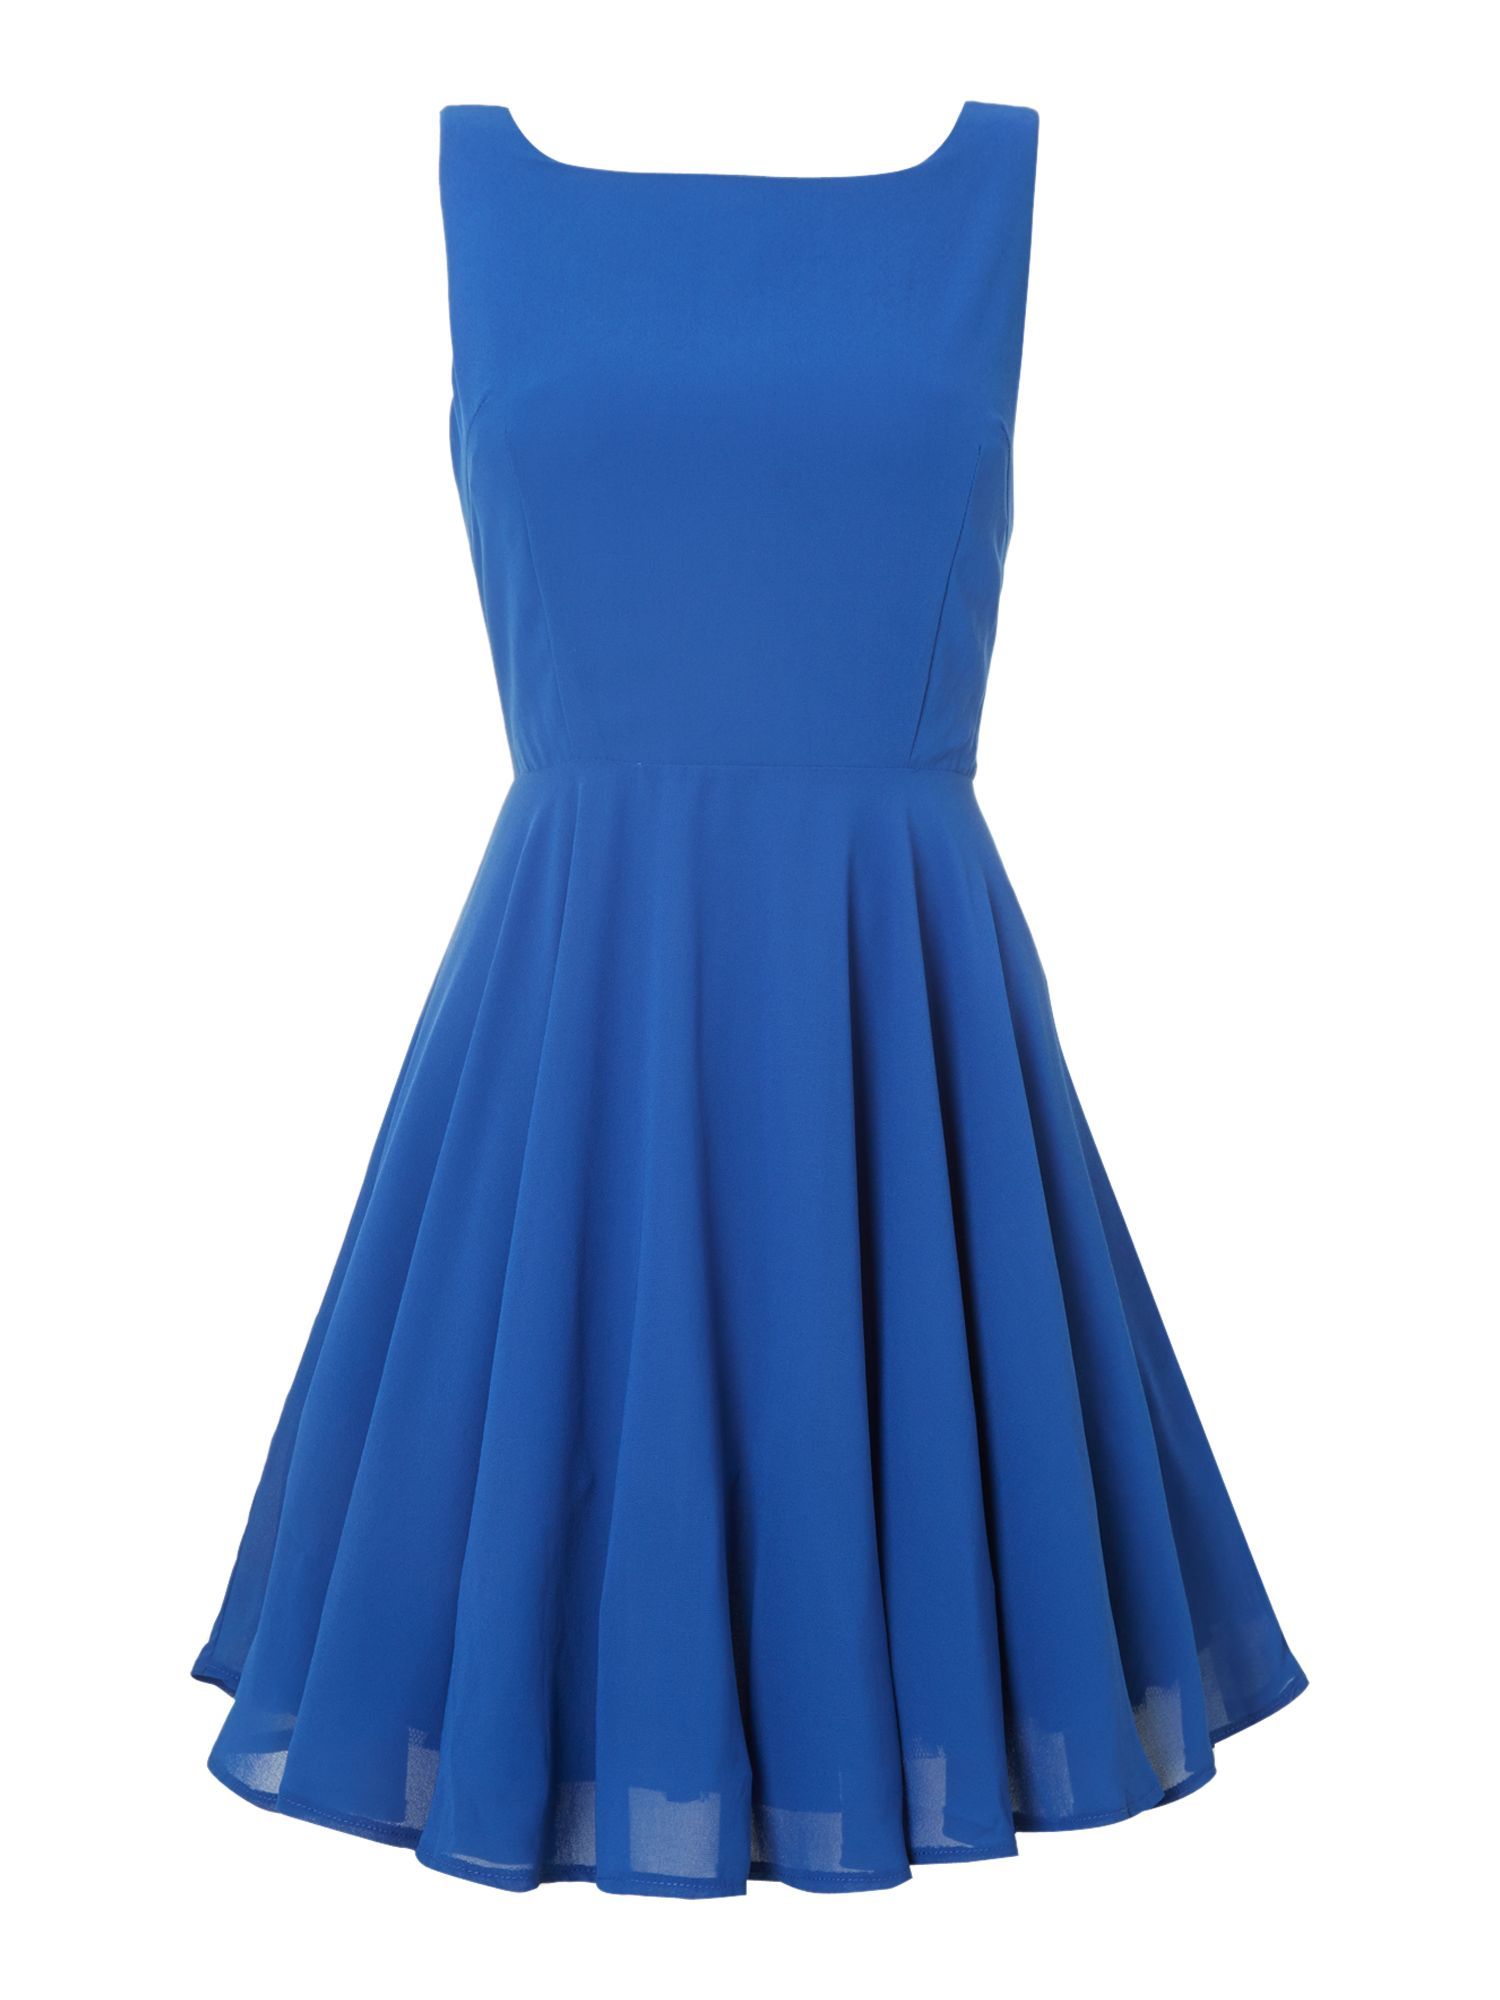 Plain Blue Dress